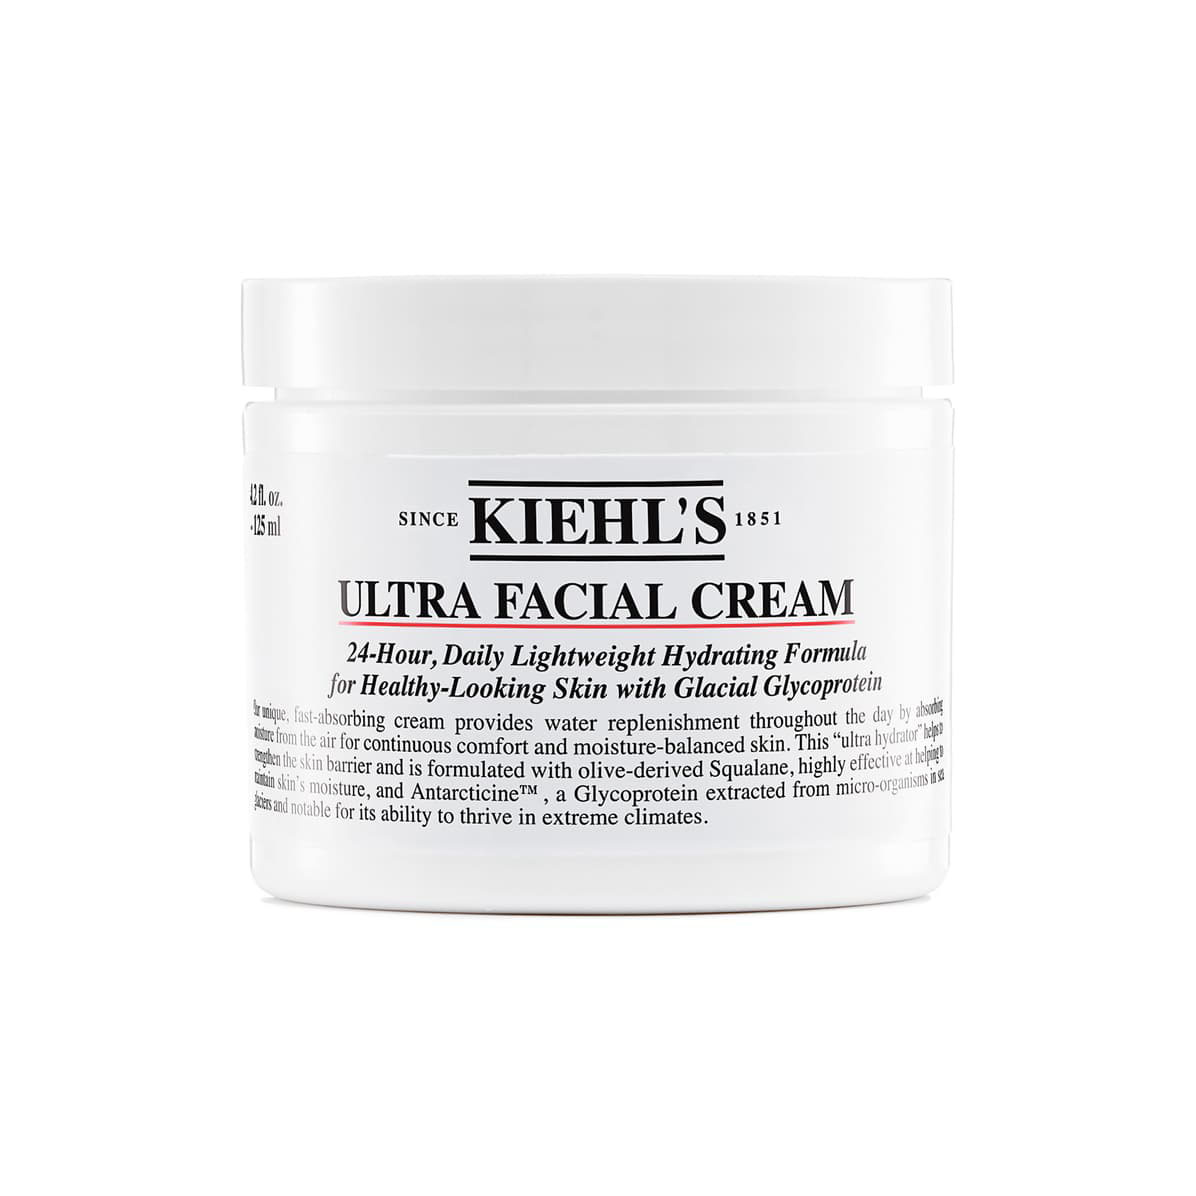 KIEHLS SINCE 1851 Kiehls Ultra Facial Cream 키엘 울트라 훼이셜 크림 125ml, 1개